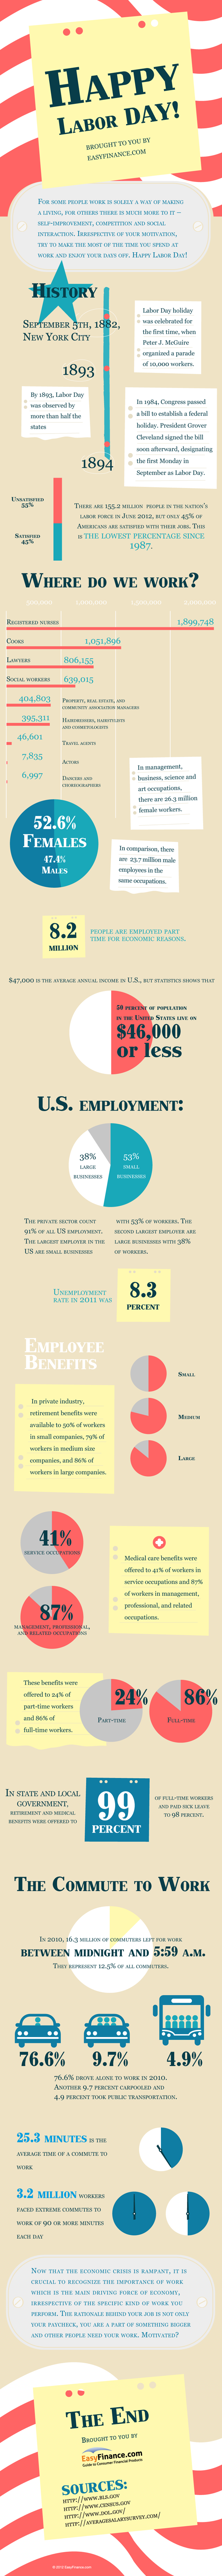 Happy Labor Day! (Infographic)